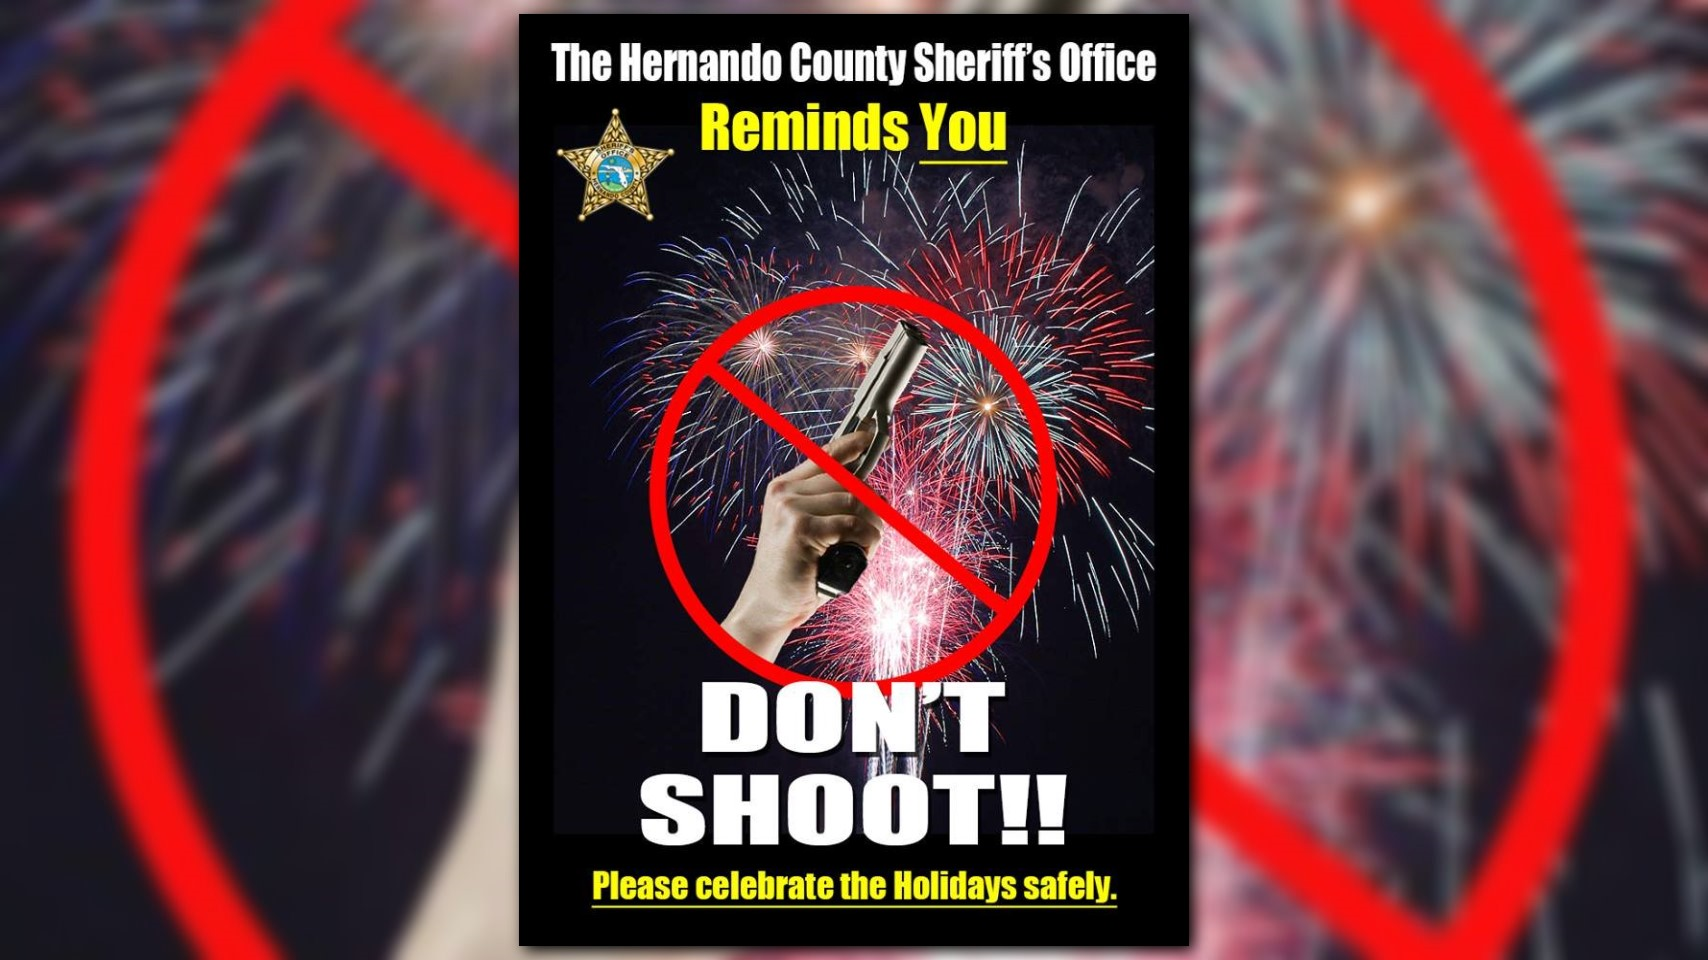 Florida sheriff's office warns against 'celebratory ...